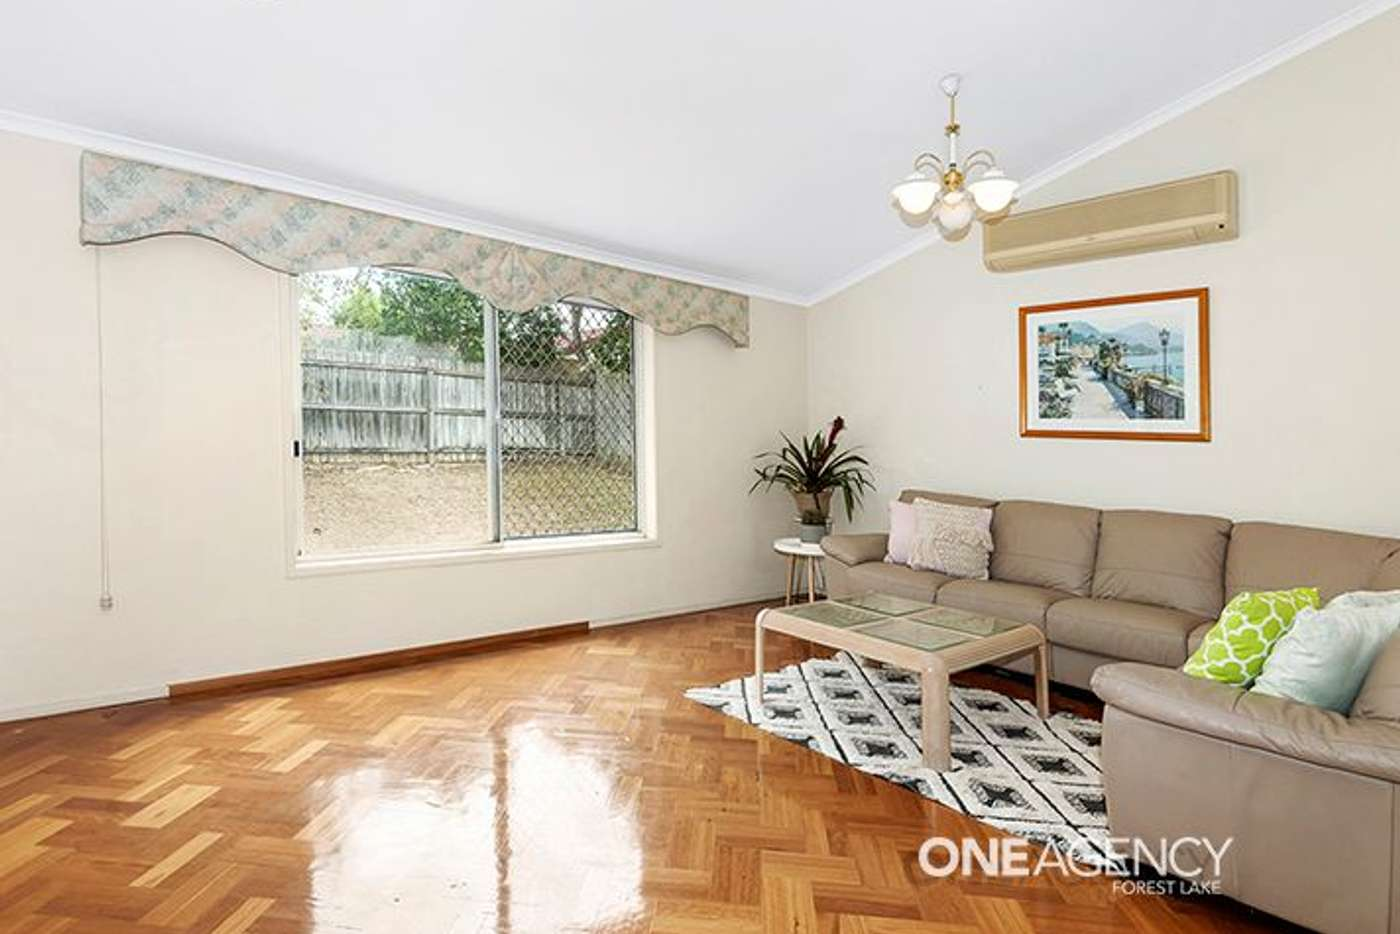 Sixth view of Homely house listing, 2 Greenstead Way, Forest Lake QLD 4078